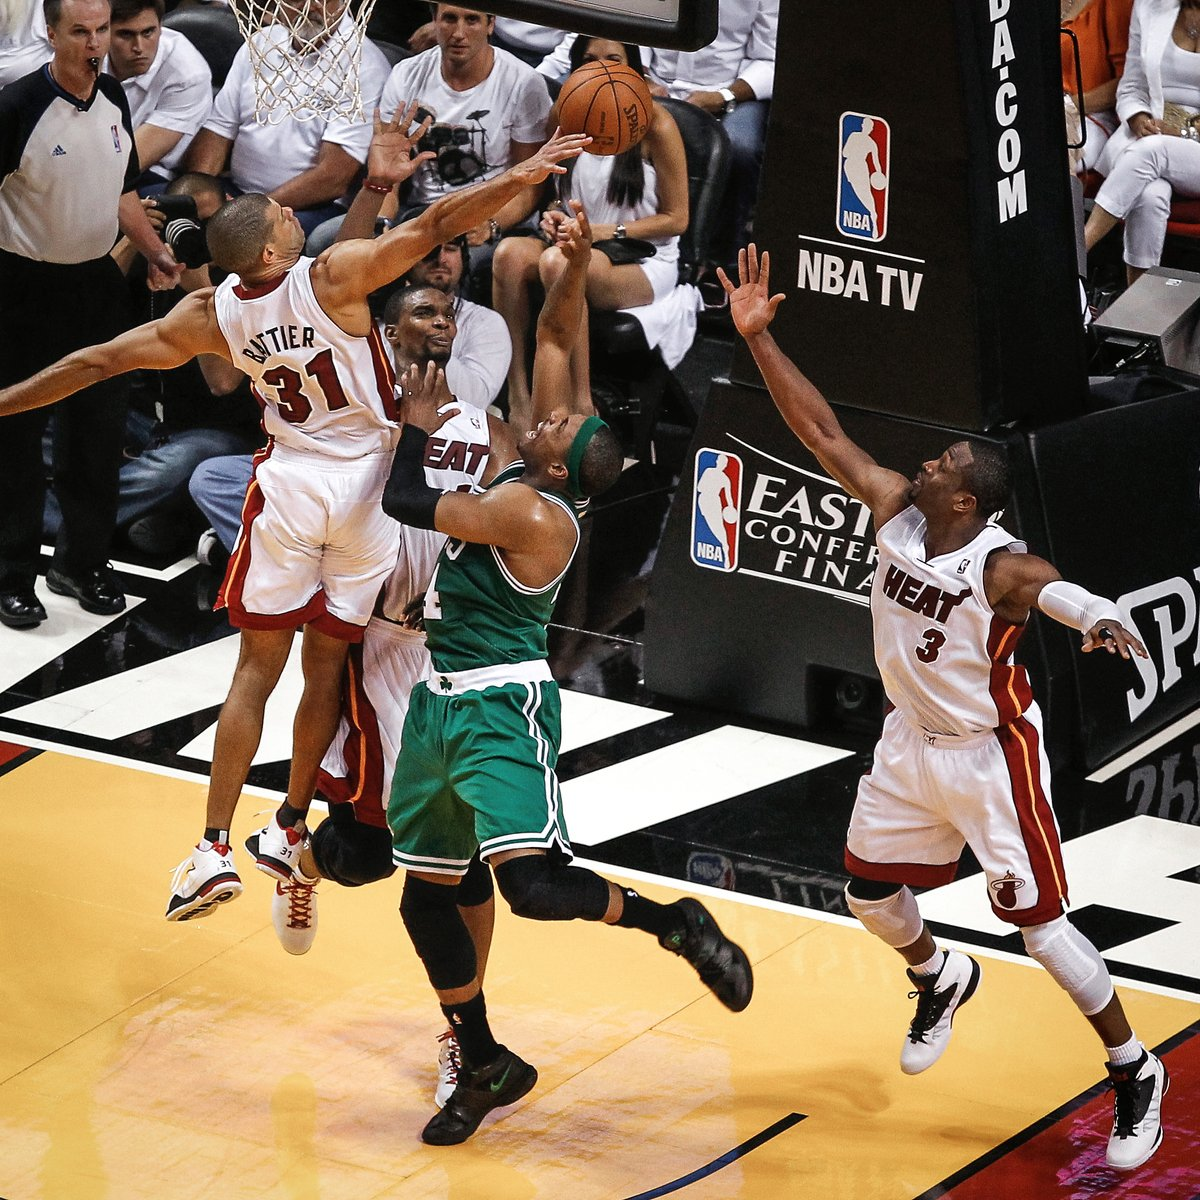 The 2012 Eastern Conference Finals tipped off 8 years ago today...  We know how that series ended... 😁 #TBT https://t.co/qjeFg7jMaU